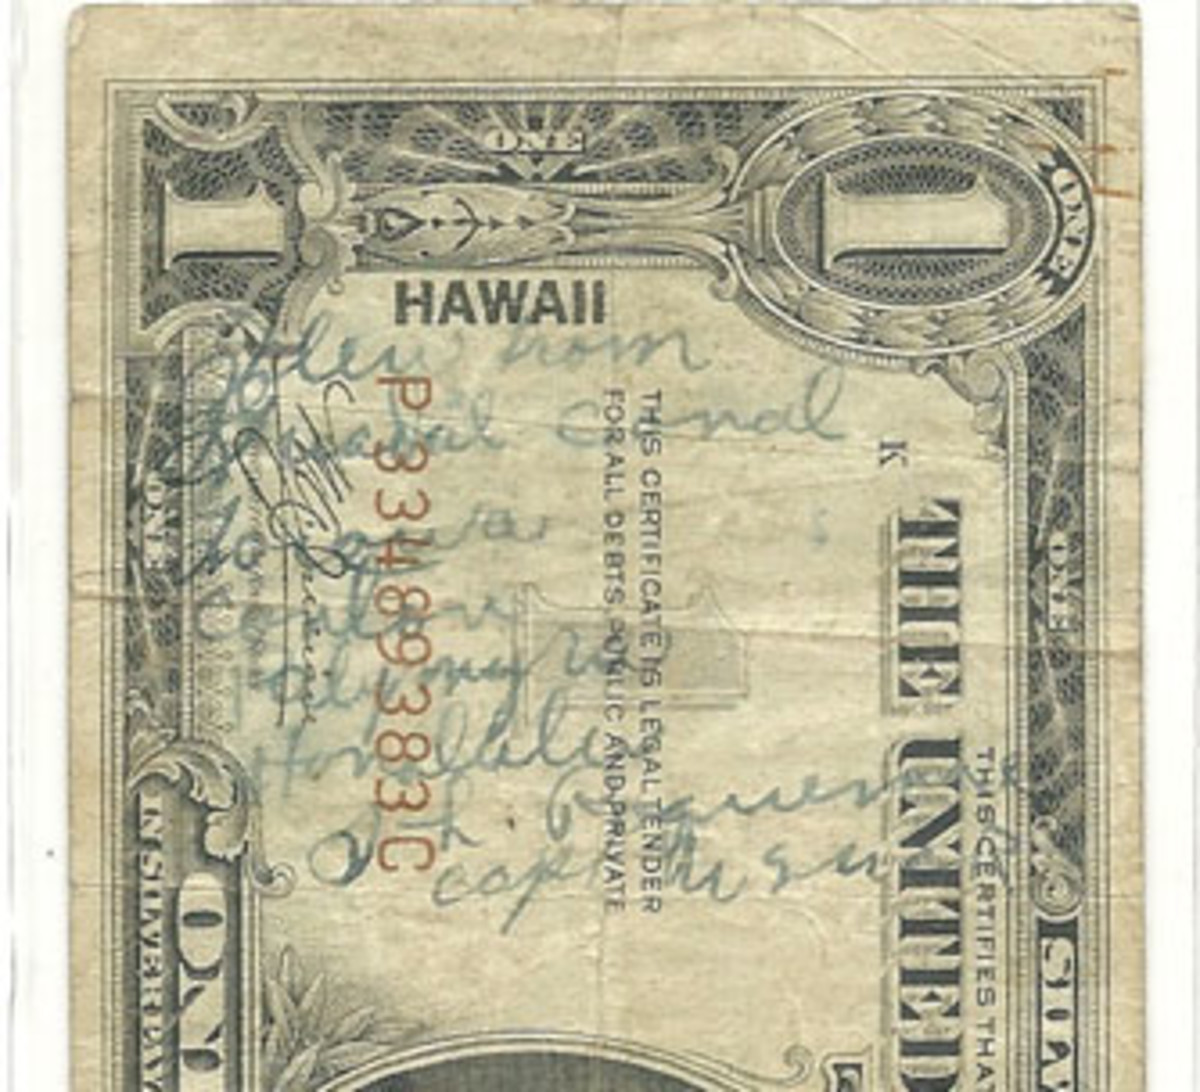 Fig. 5. On the face of the Barnum note (Fig. 4 above), the flight captain recorded the entire flight from Guadalcanal to Honolulu with the various stops along the way.